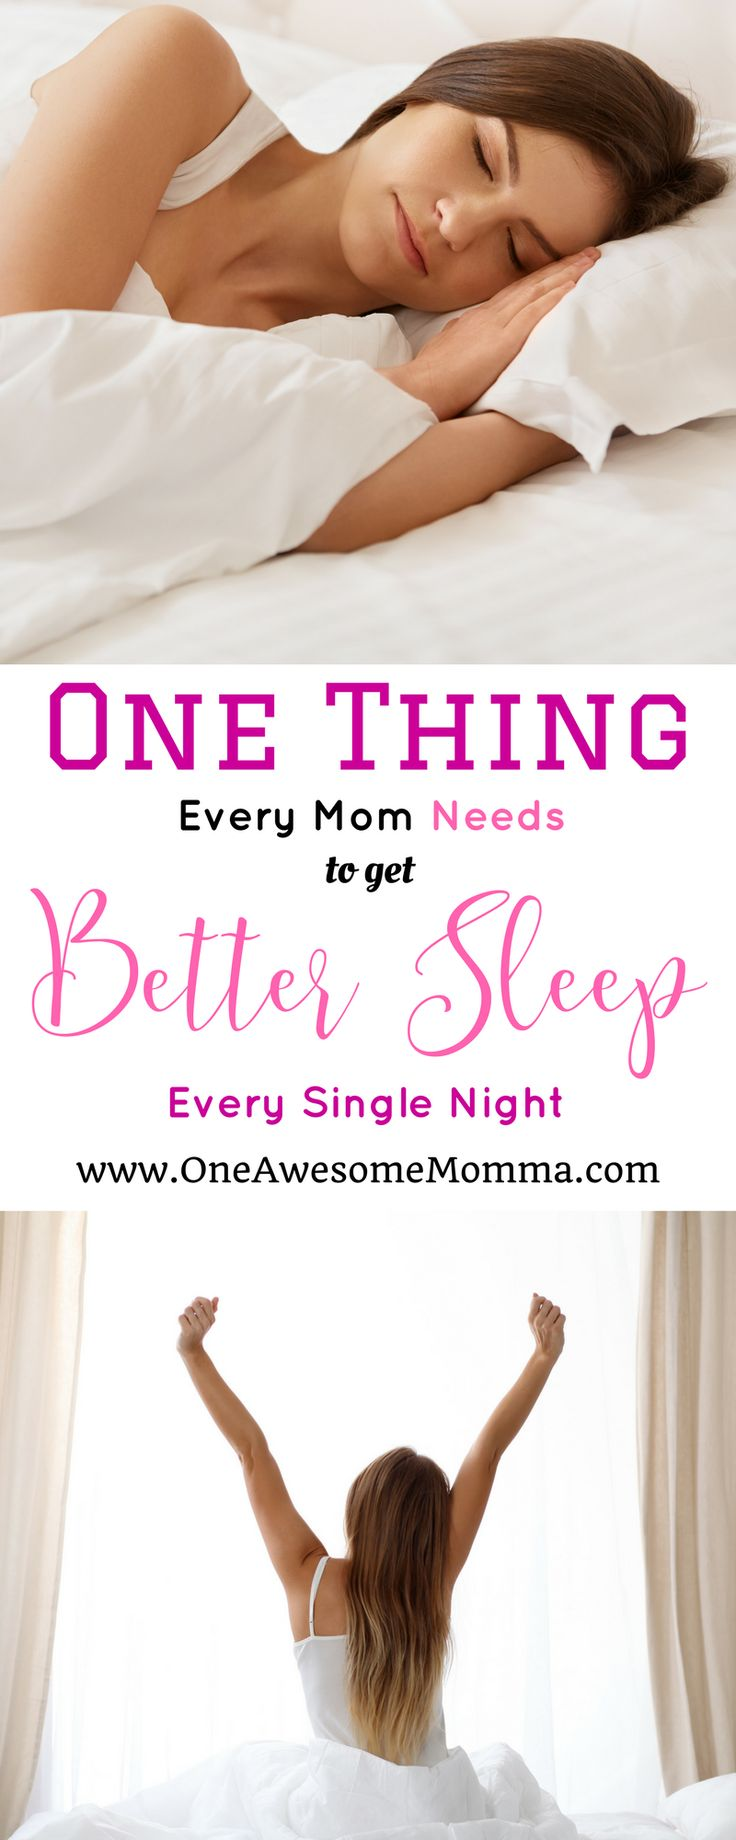 [ad] Sleep is a necessity that not everyone gets to have enough of, especially moms. With some known factors to consider to help you get the best sleep every single night, here's the only thing you will need to get better sleep night after night. | mom problems | mom issues | mom challenges | sleep tips | better sleep | better sleep tips | sleep issues | sleep help | sleep better | sleep better at night | sleep system | hybrid mattress | memory foam pillow | sleeptracker | #tomorrowsleep